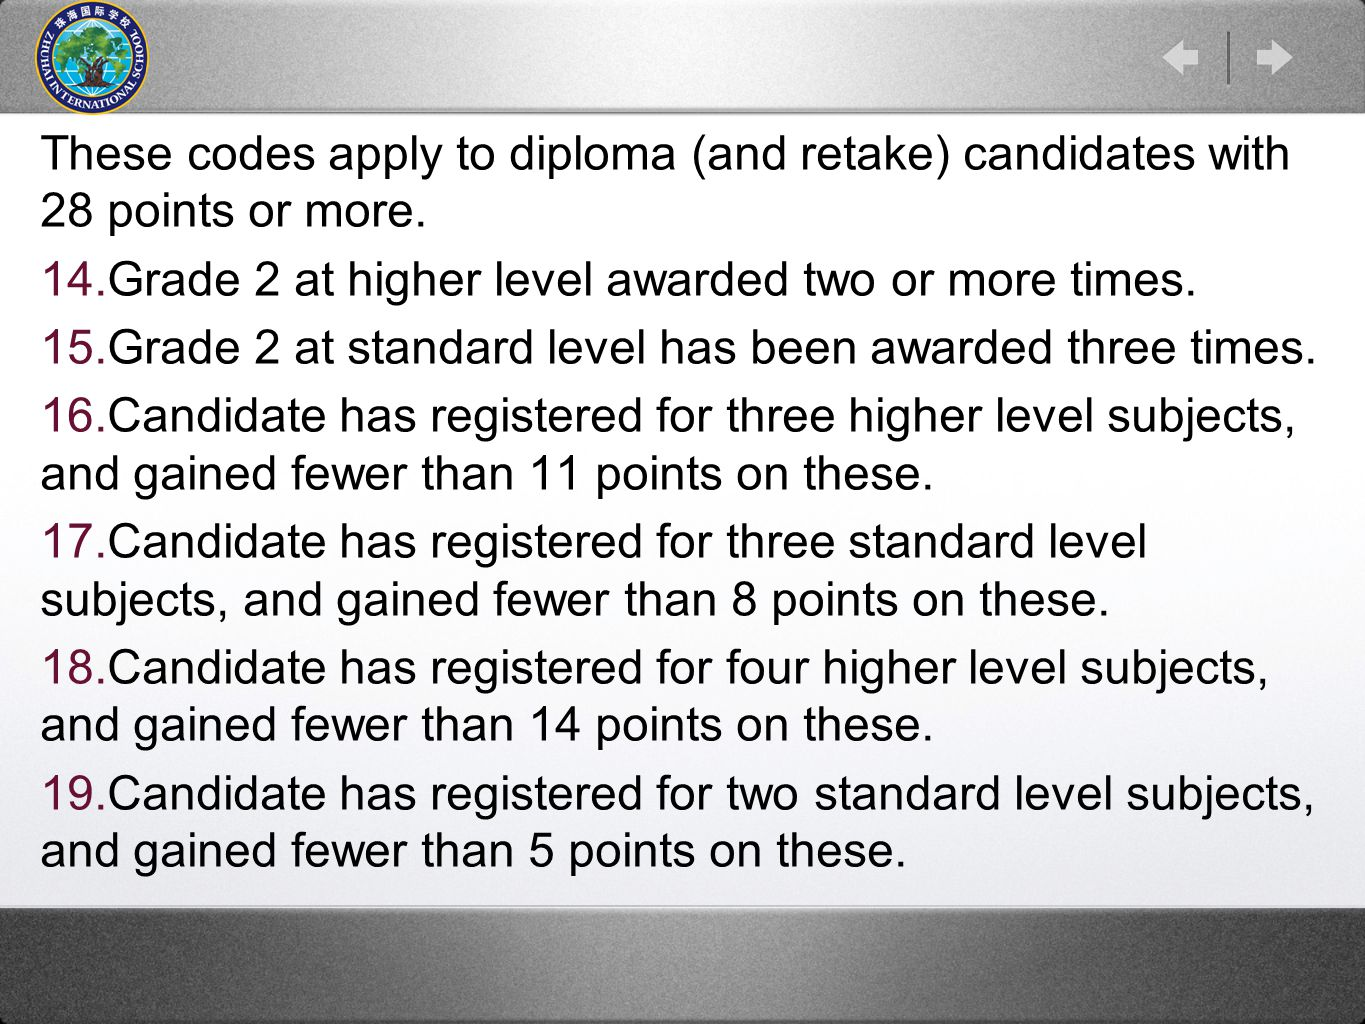 These codes apply to diploma (and retake) candidates with 28 points or more.